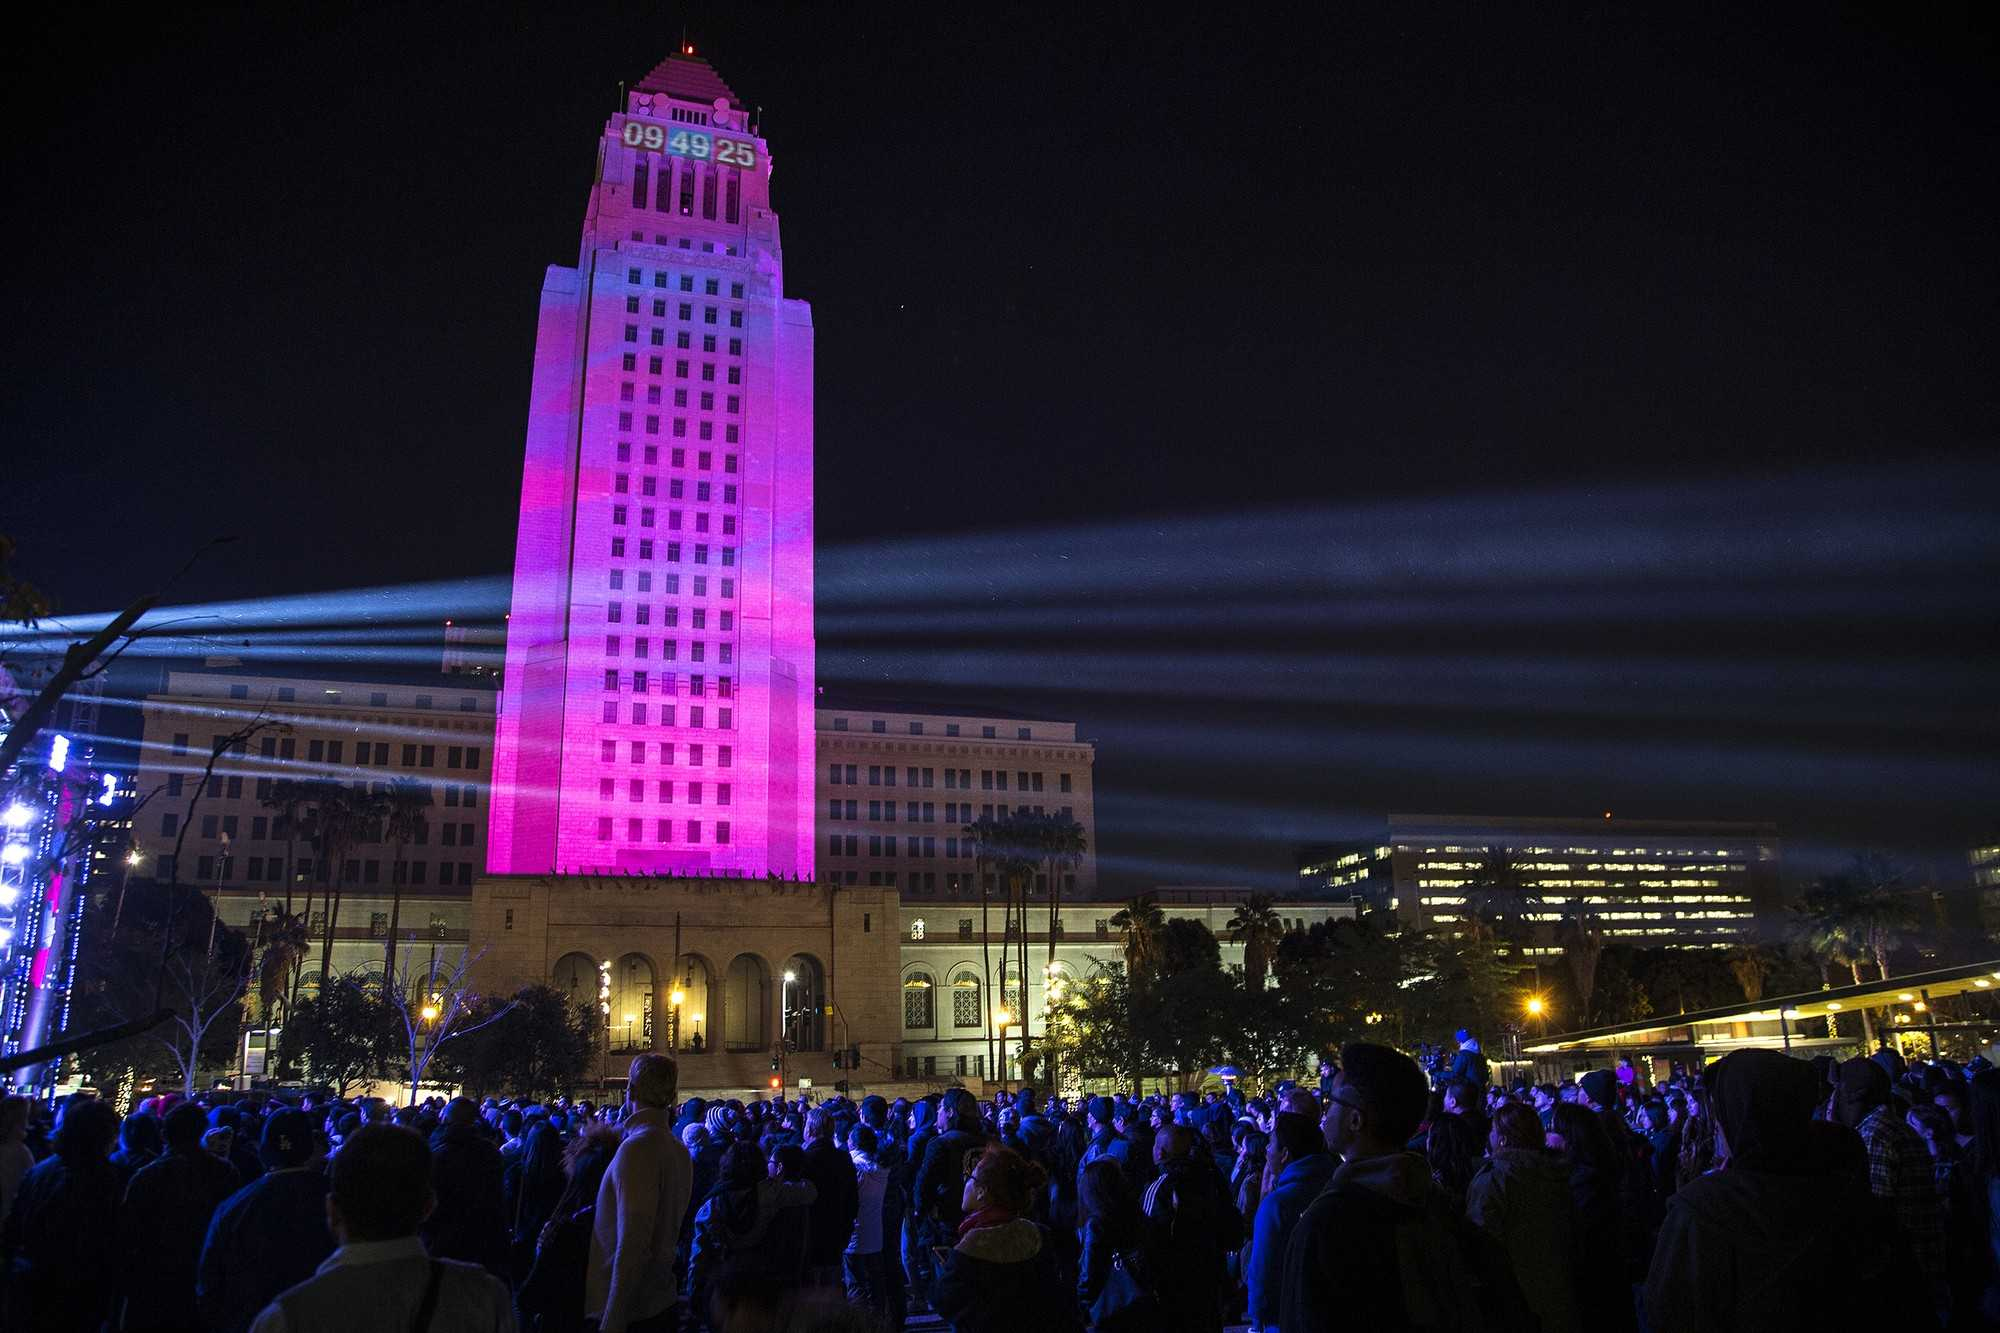 Los Angeles City Hall is lit up in pink with the countdown clock illuminated at the top as revelers enjoy live music  during New Year's Eve celebration at Grand Park in Los Angeles on December 31, 2015. (Gina Ferazzi/Los Angeles Times/TNS)